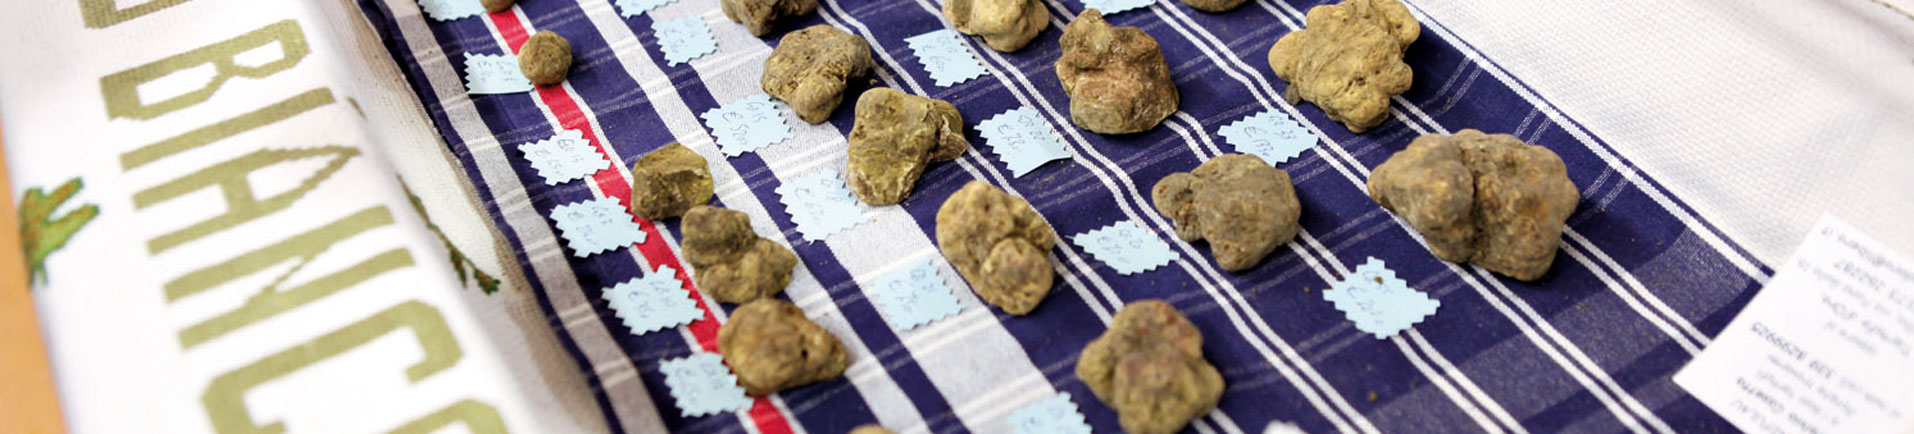 Alba International White Truffle Fair